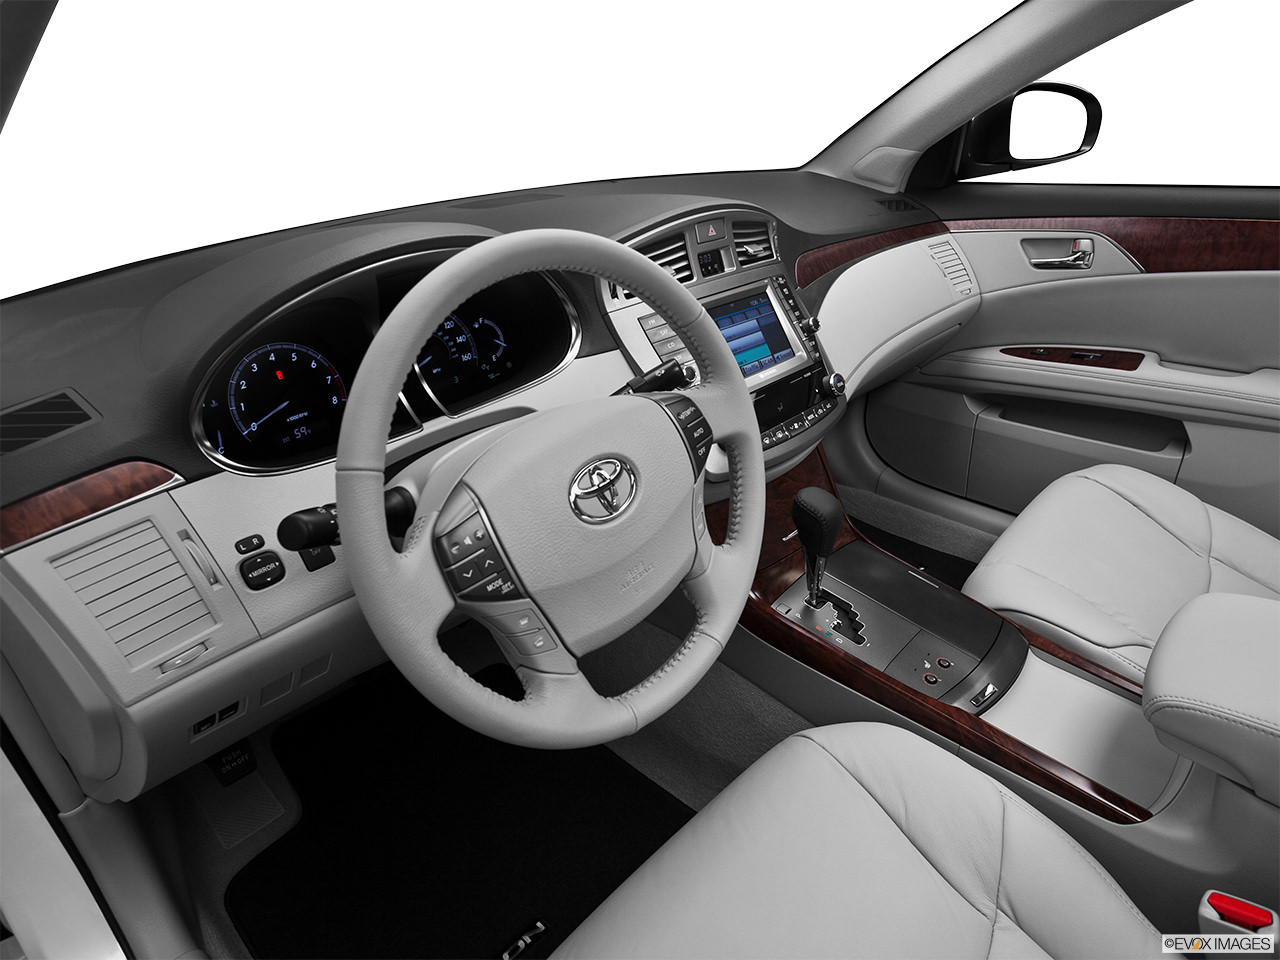 Toyota Avalon 2012 Interior